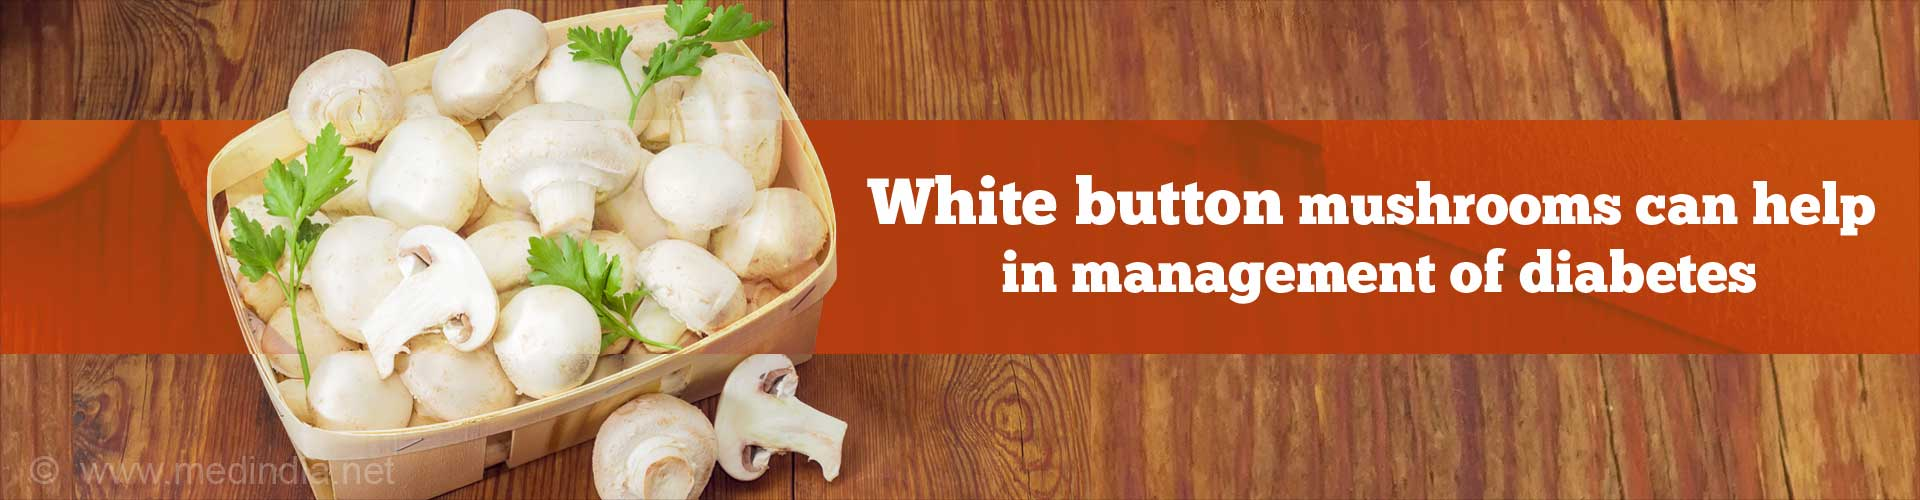 White button mushrooms can help in management of diabetes.